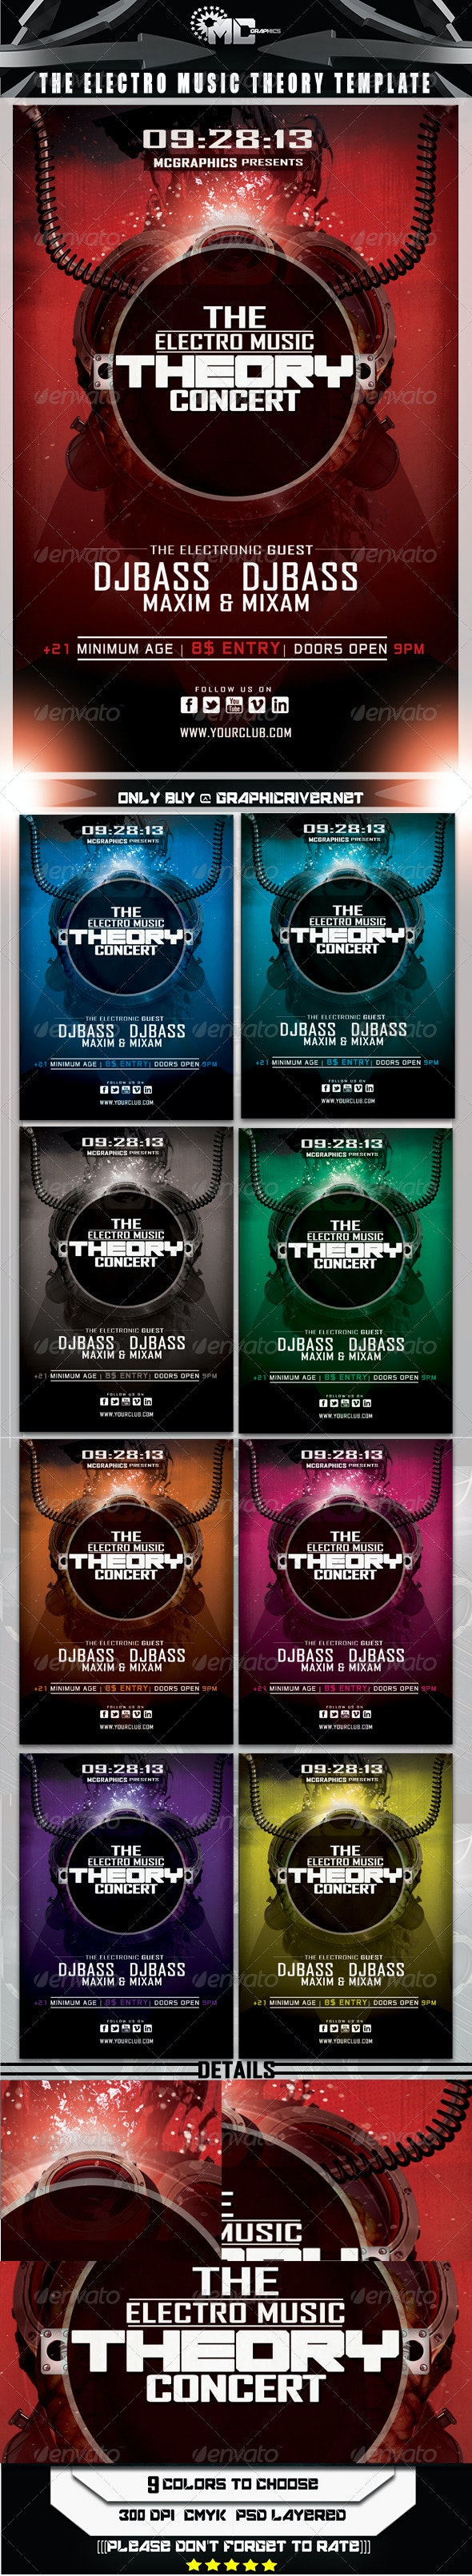 Electro Music Theory Concert Flyer Template - Concerts Events